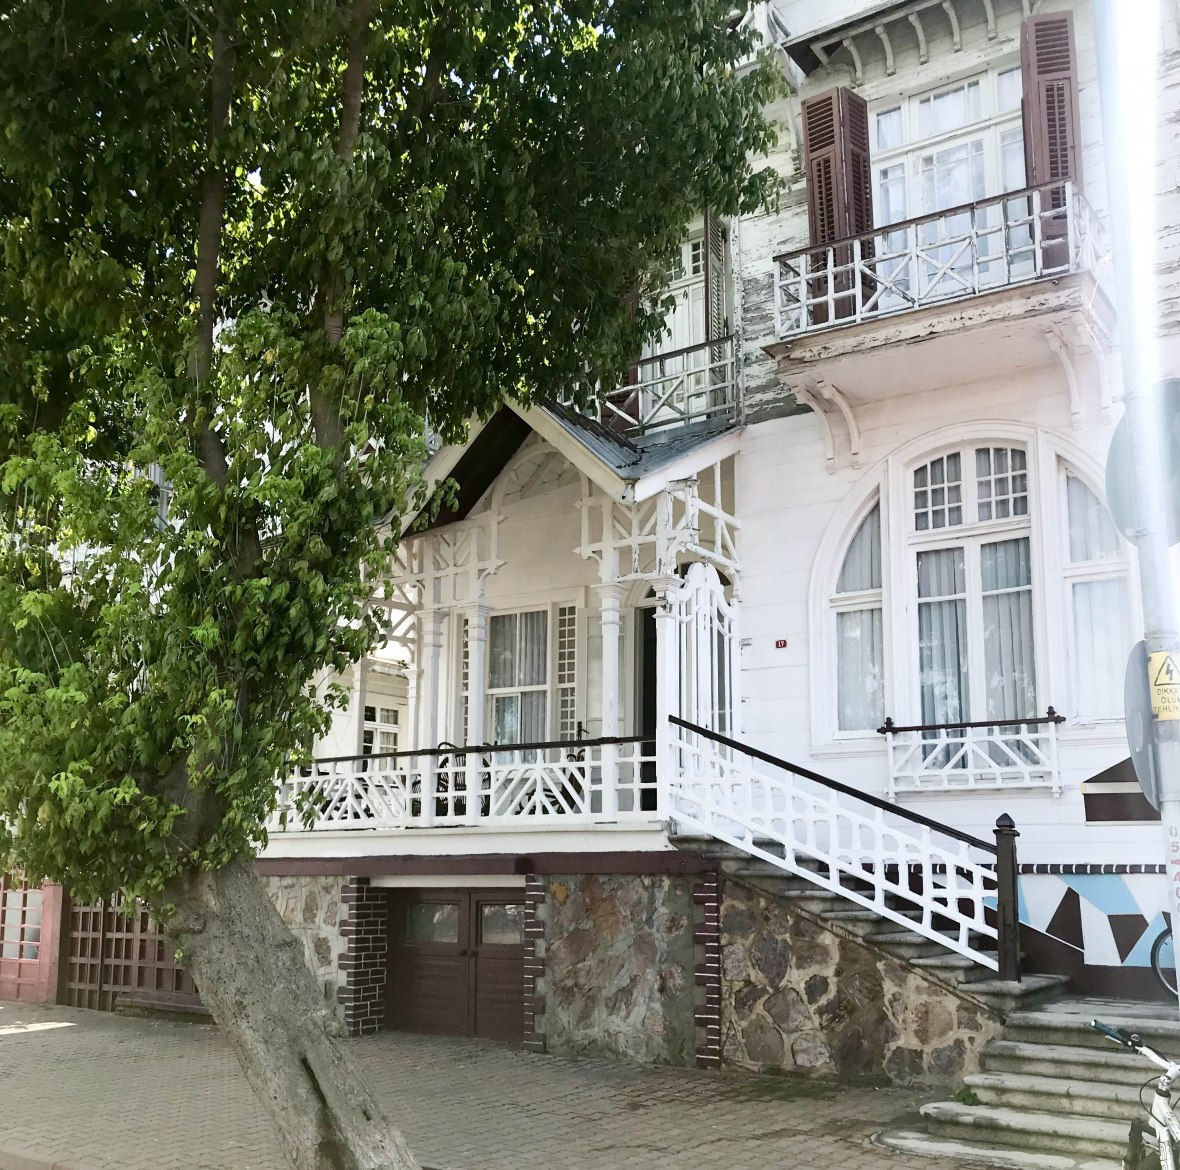 beautiful houses, kınalıada, adalar, princes islands, istanbul, turkey